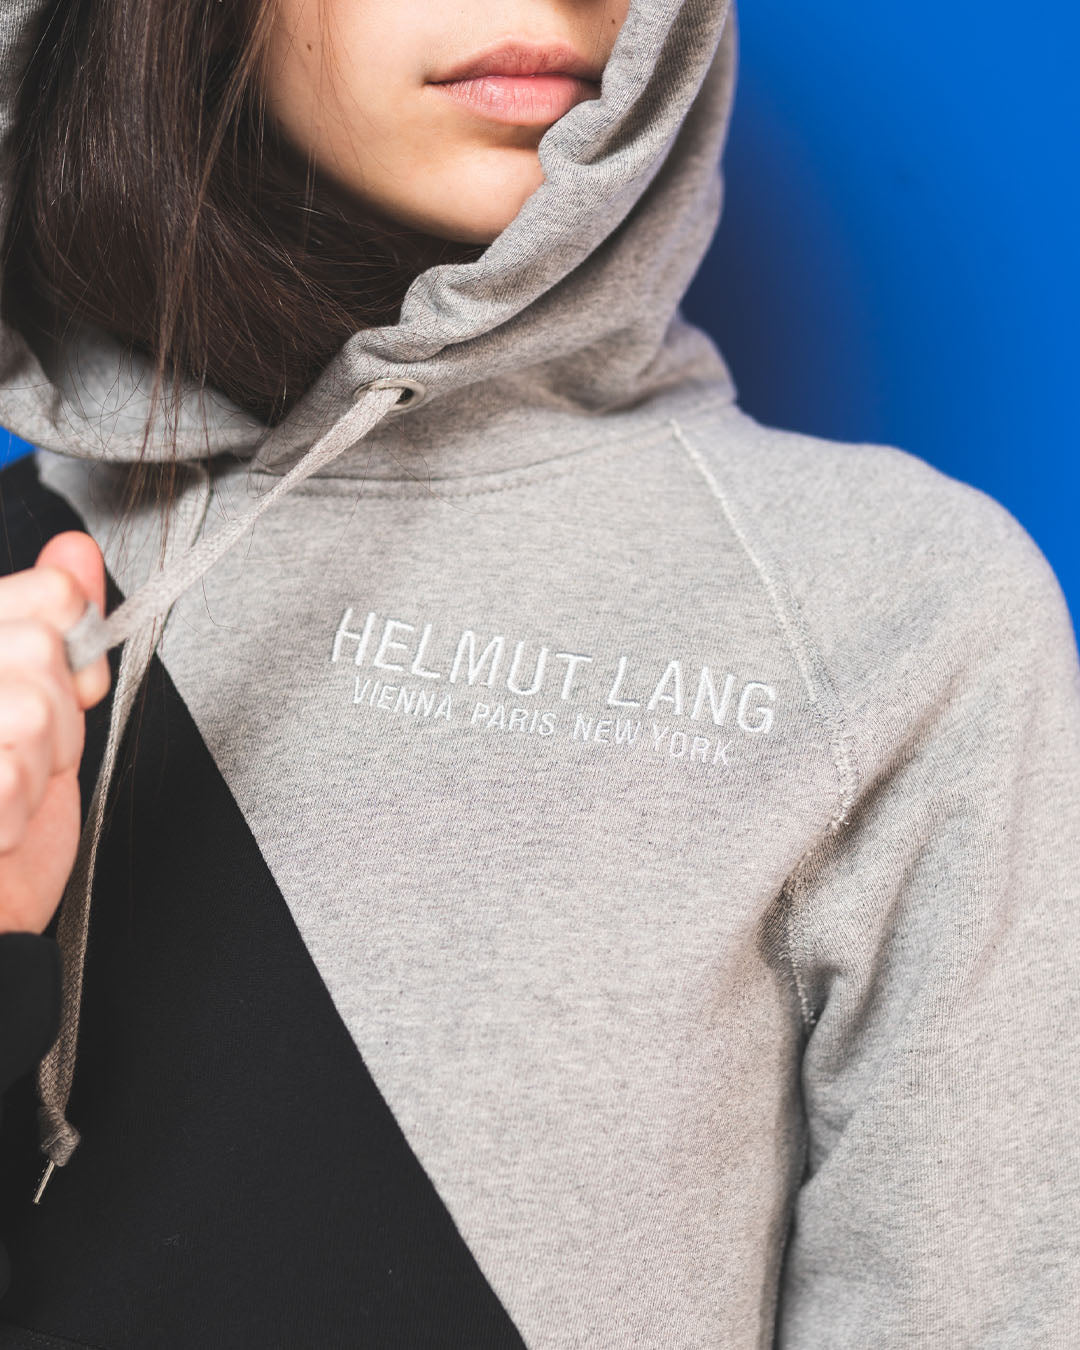 Helmut Lang Resort 2020